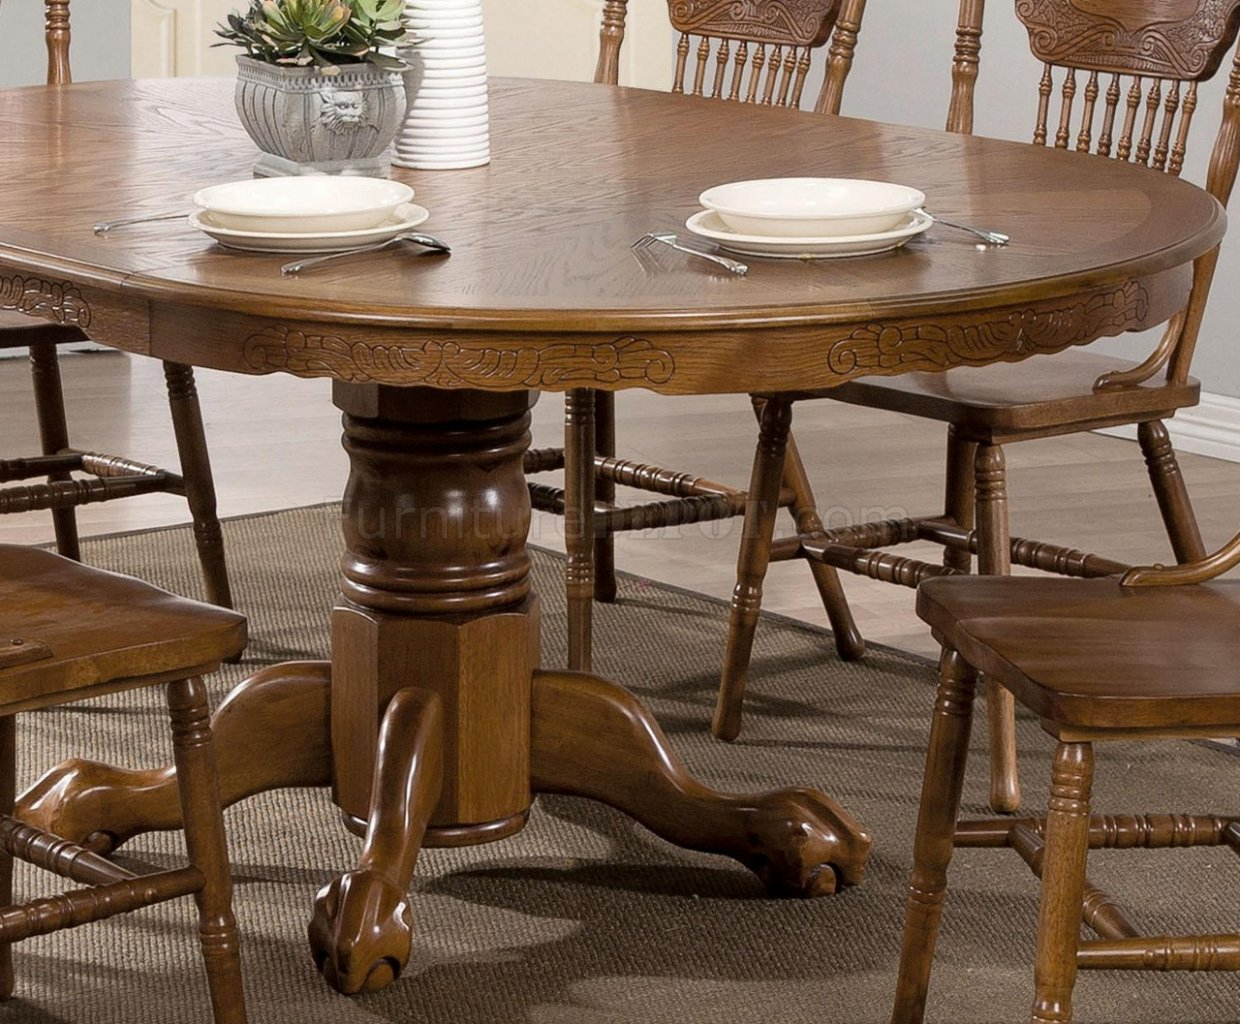 Brooks Dining Table 104270Coaster In Oak W/options Throughout Newest Brooks Dining Tables (View 6 of 25)